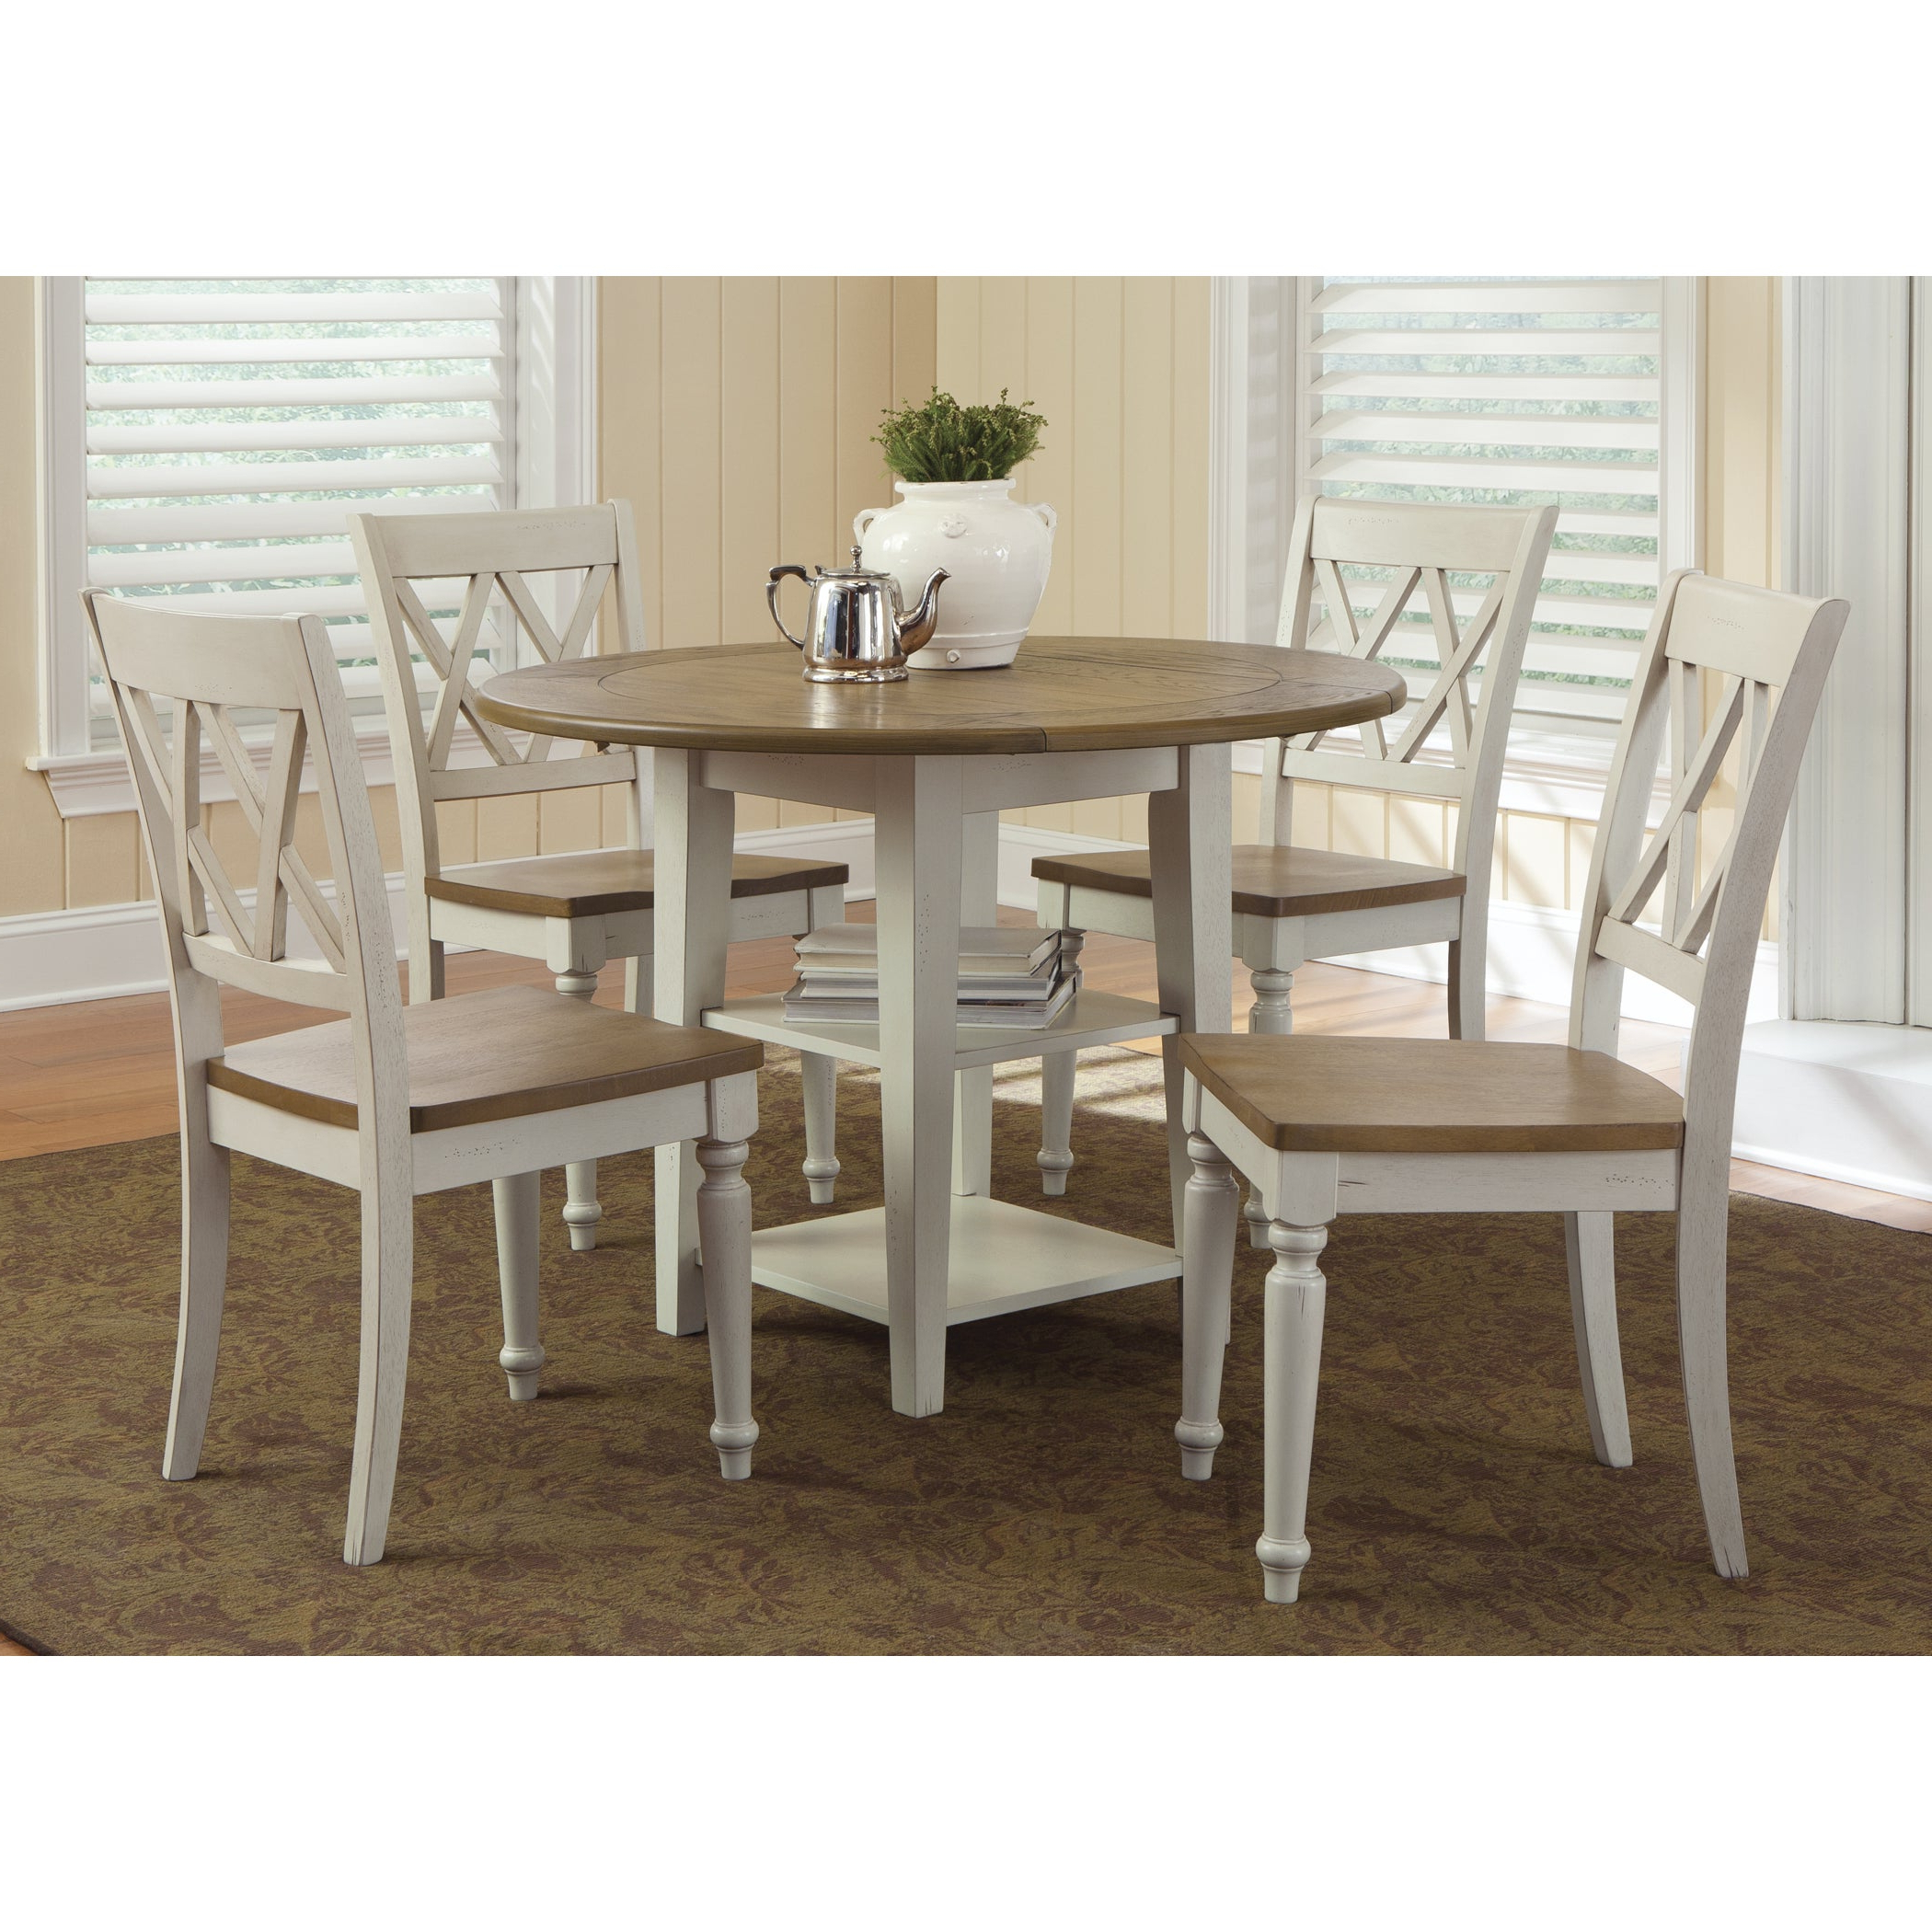 Popular Al Fresco Two Tone Transitional Drop Leaf Leg Table – Antique White For Transitional Driftwood Casual Dining Tables (View 16 of 30)